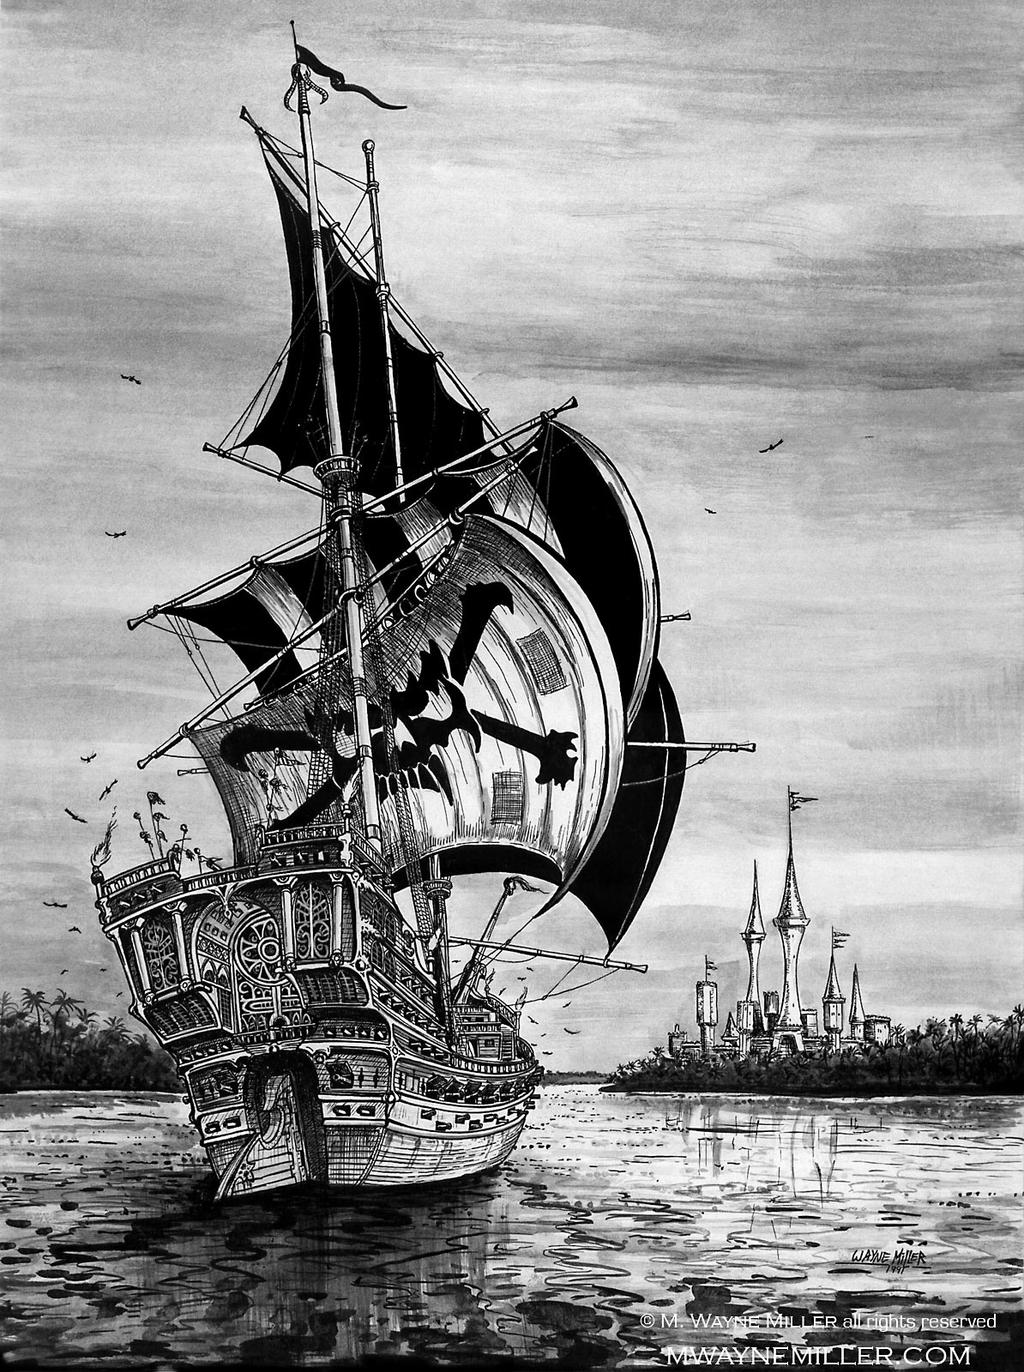 Pirate ship drawing - photo#24